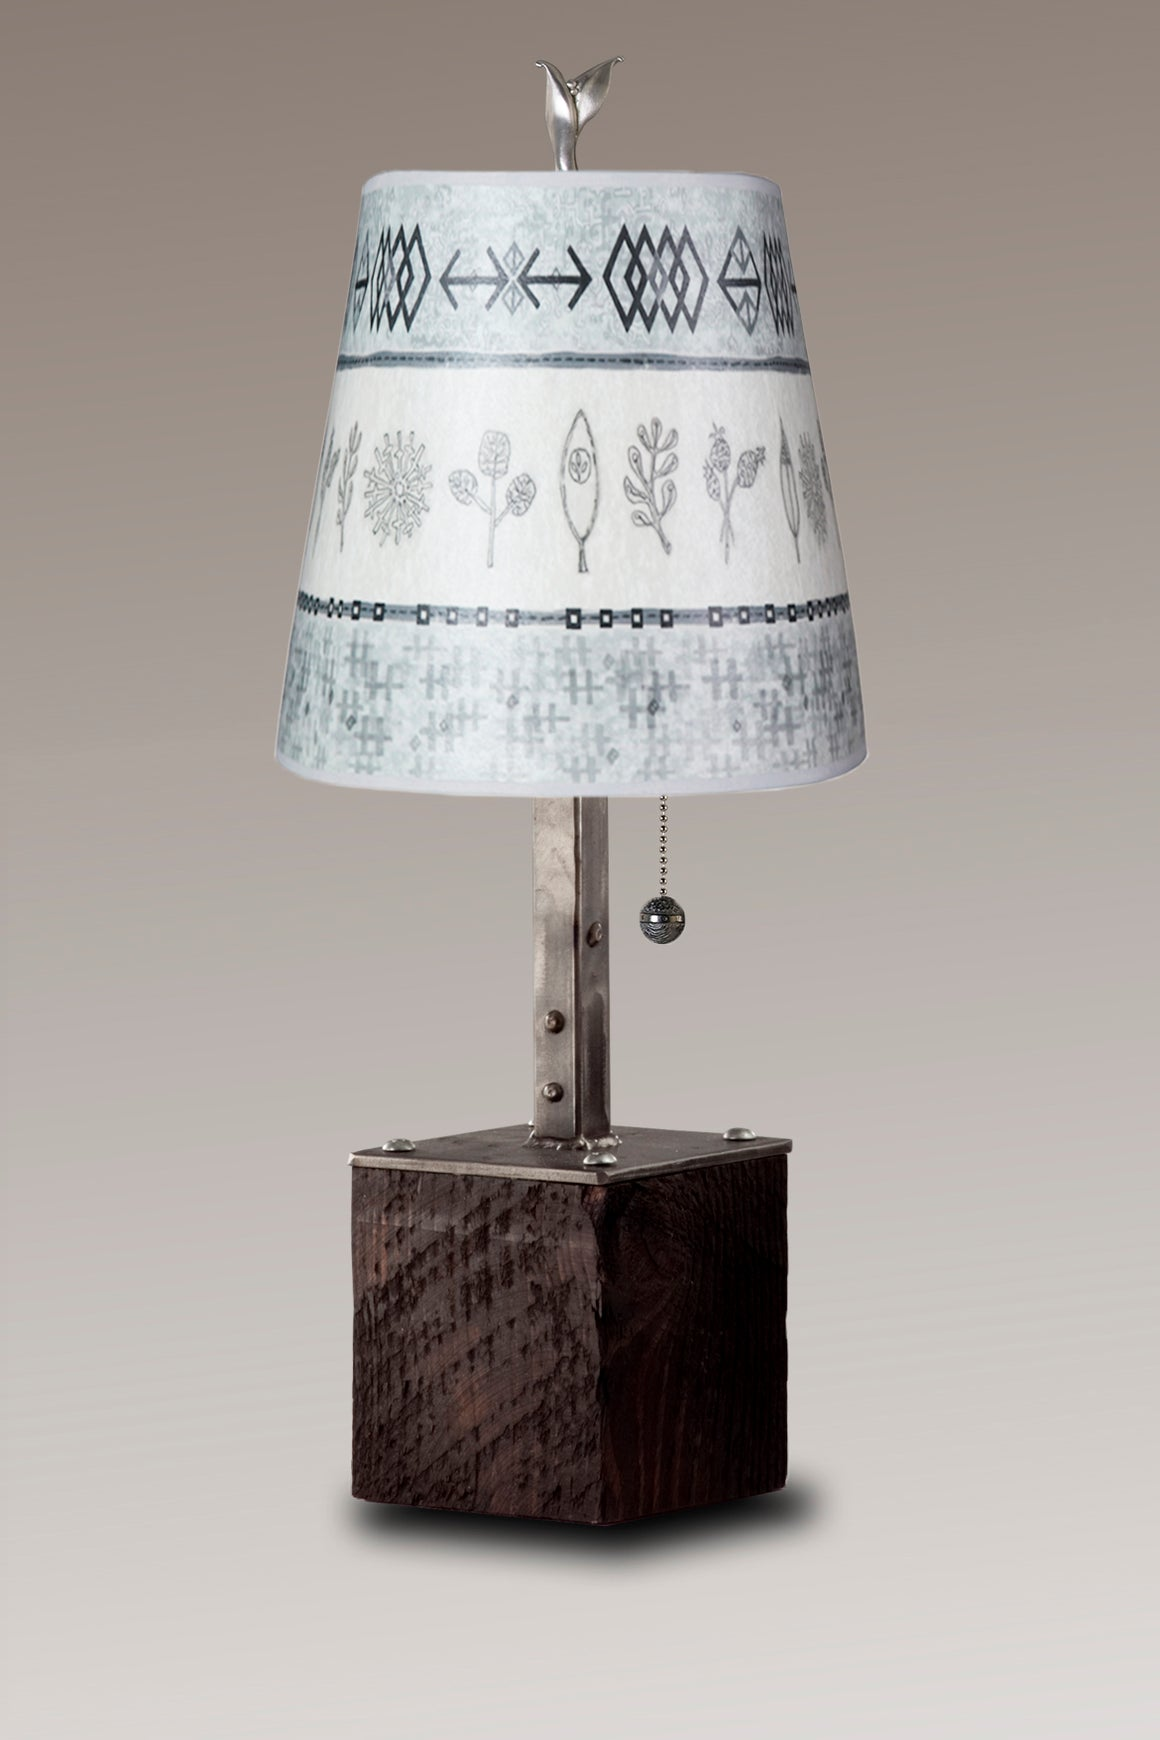 Steel Table Lamp on Reclaimed Wood with Small Drum Shade in Woven & Sprig in Mist